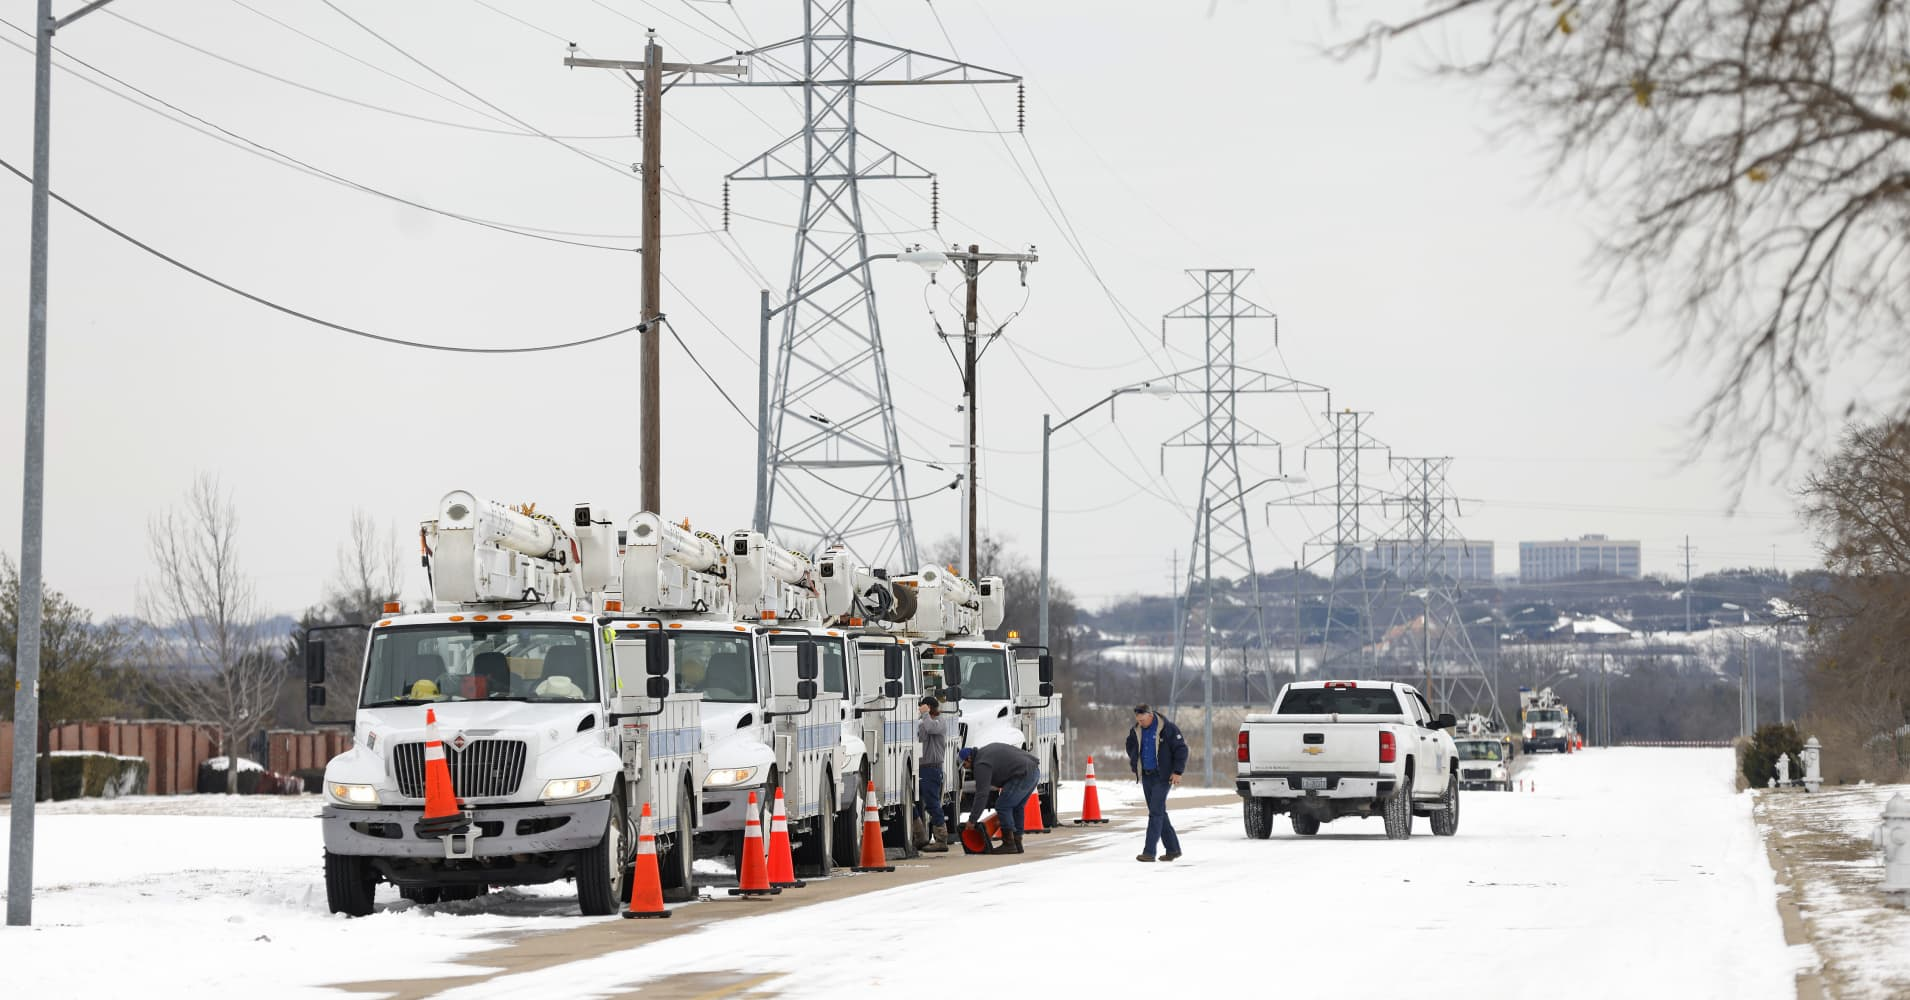 a group of people standing on top of a snow covered road: Pike Electric service trucks line up after a snow storm on February 16, 2021 in Fort Worth, Texas. Winter storm Uri has brought historic cold weather and power outages to Texas as storms have swept across 26 states with a mix of freezing temperatures and precipitation.